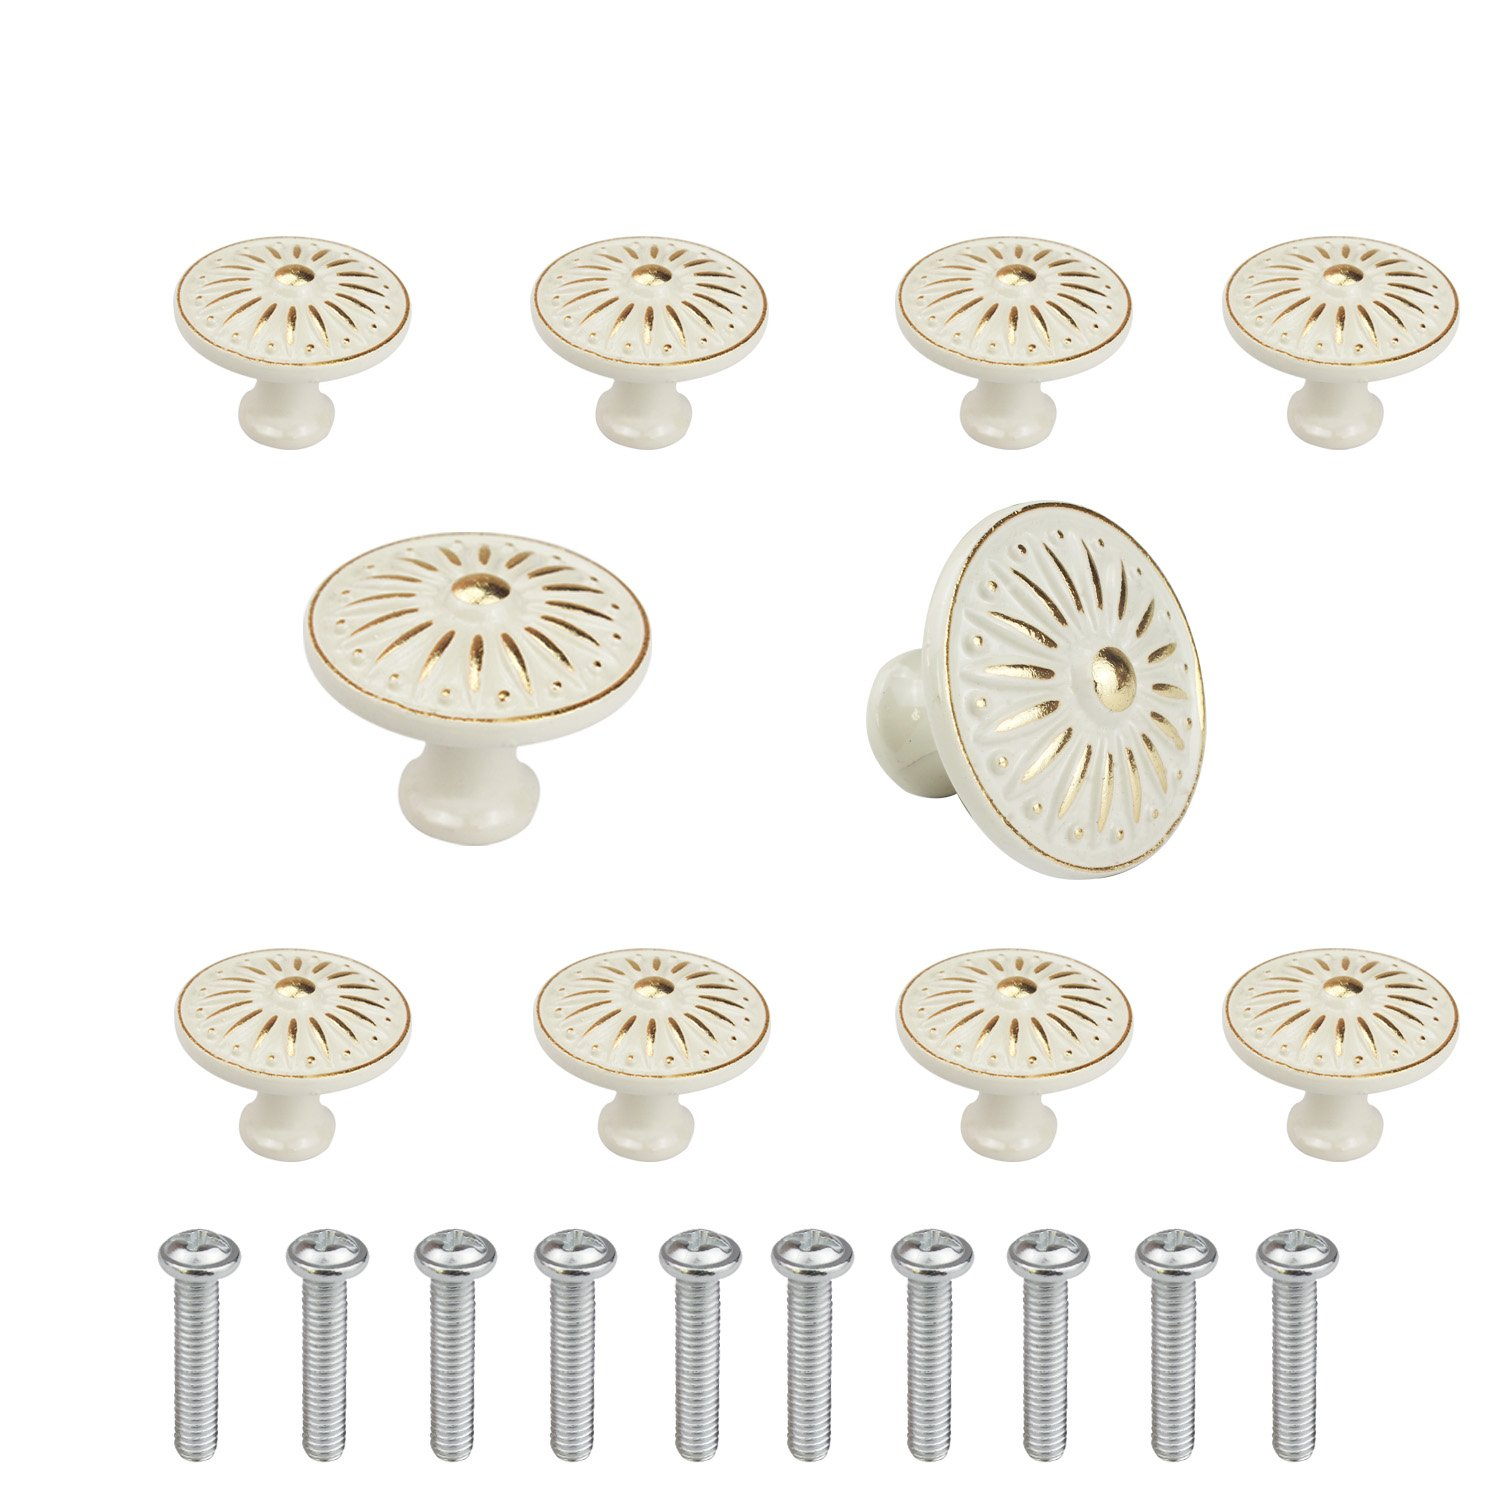 WeiMeet Cabinet Knob, 10Pcs 35mm Single Hole Ceramic knob Dresser Cupboard Cabinet Drawer Knobs Wardrobe Door Pull Handle for Home Office